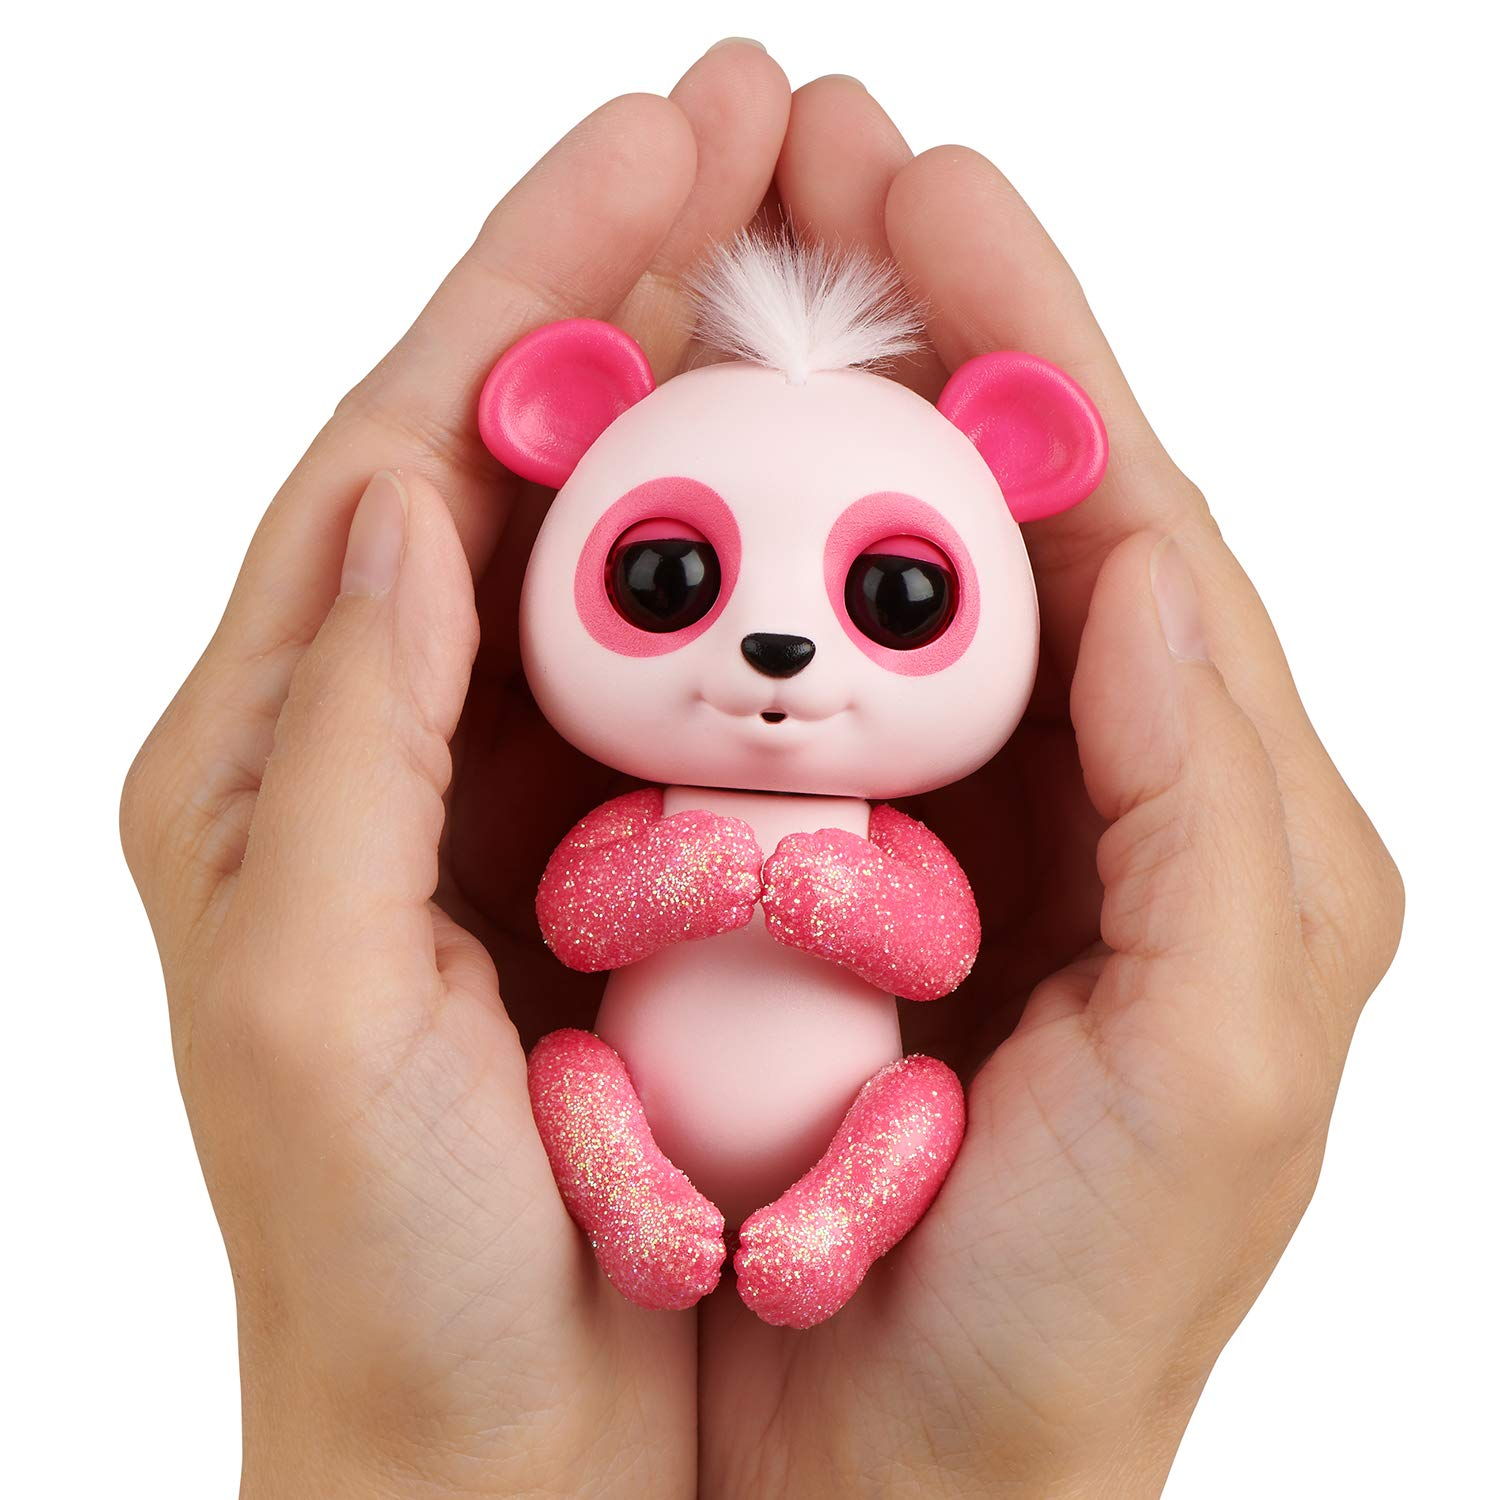 WowWee Fingerlings Glitter Panda - Polly - Interactive Collectible Baby Pet, Pink by WowWee (Image #3)